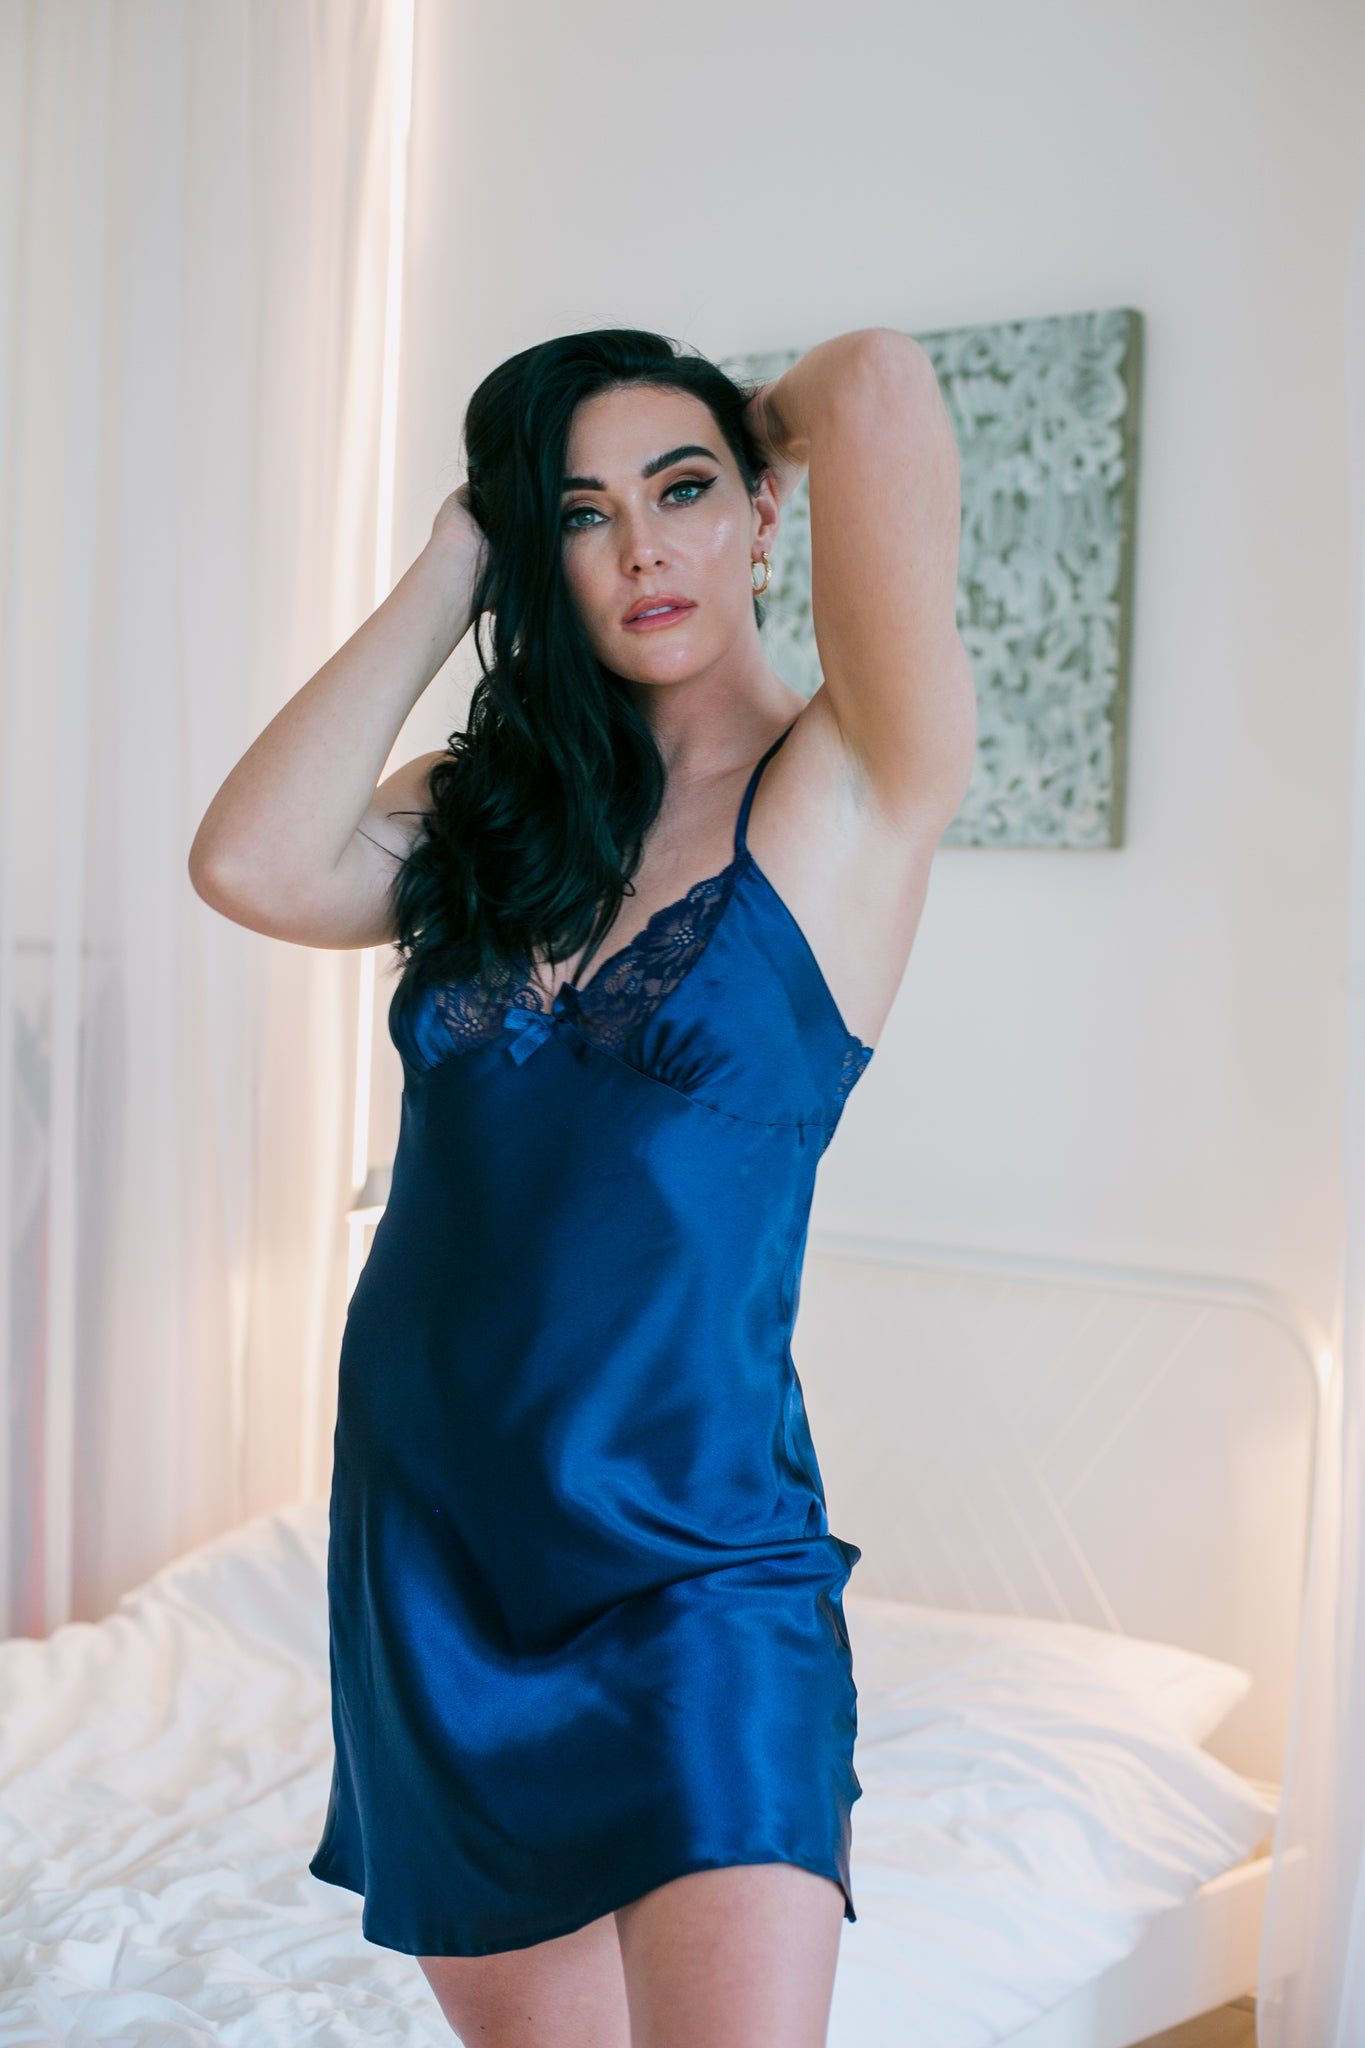 Navy Blue elegant nightdress made of the highest quality delicate satin. Beautifully decorated stretch lace cups. The back of the nightdress is also finished with stretch lace. The straps are adjustable which are crossed at the back. Knee-length at a height of 164 cm